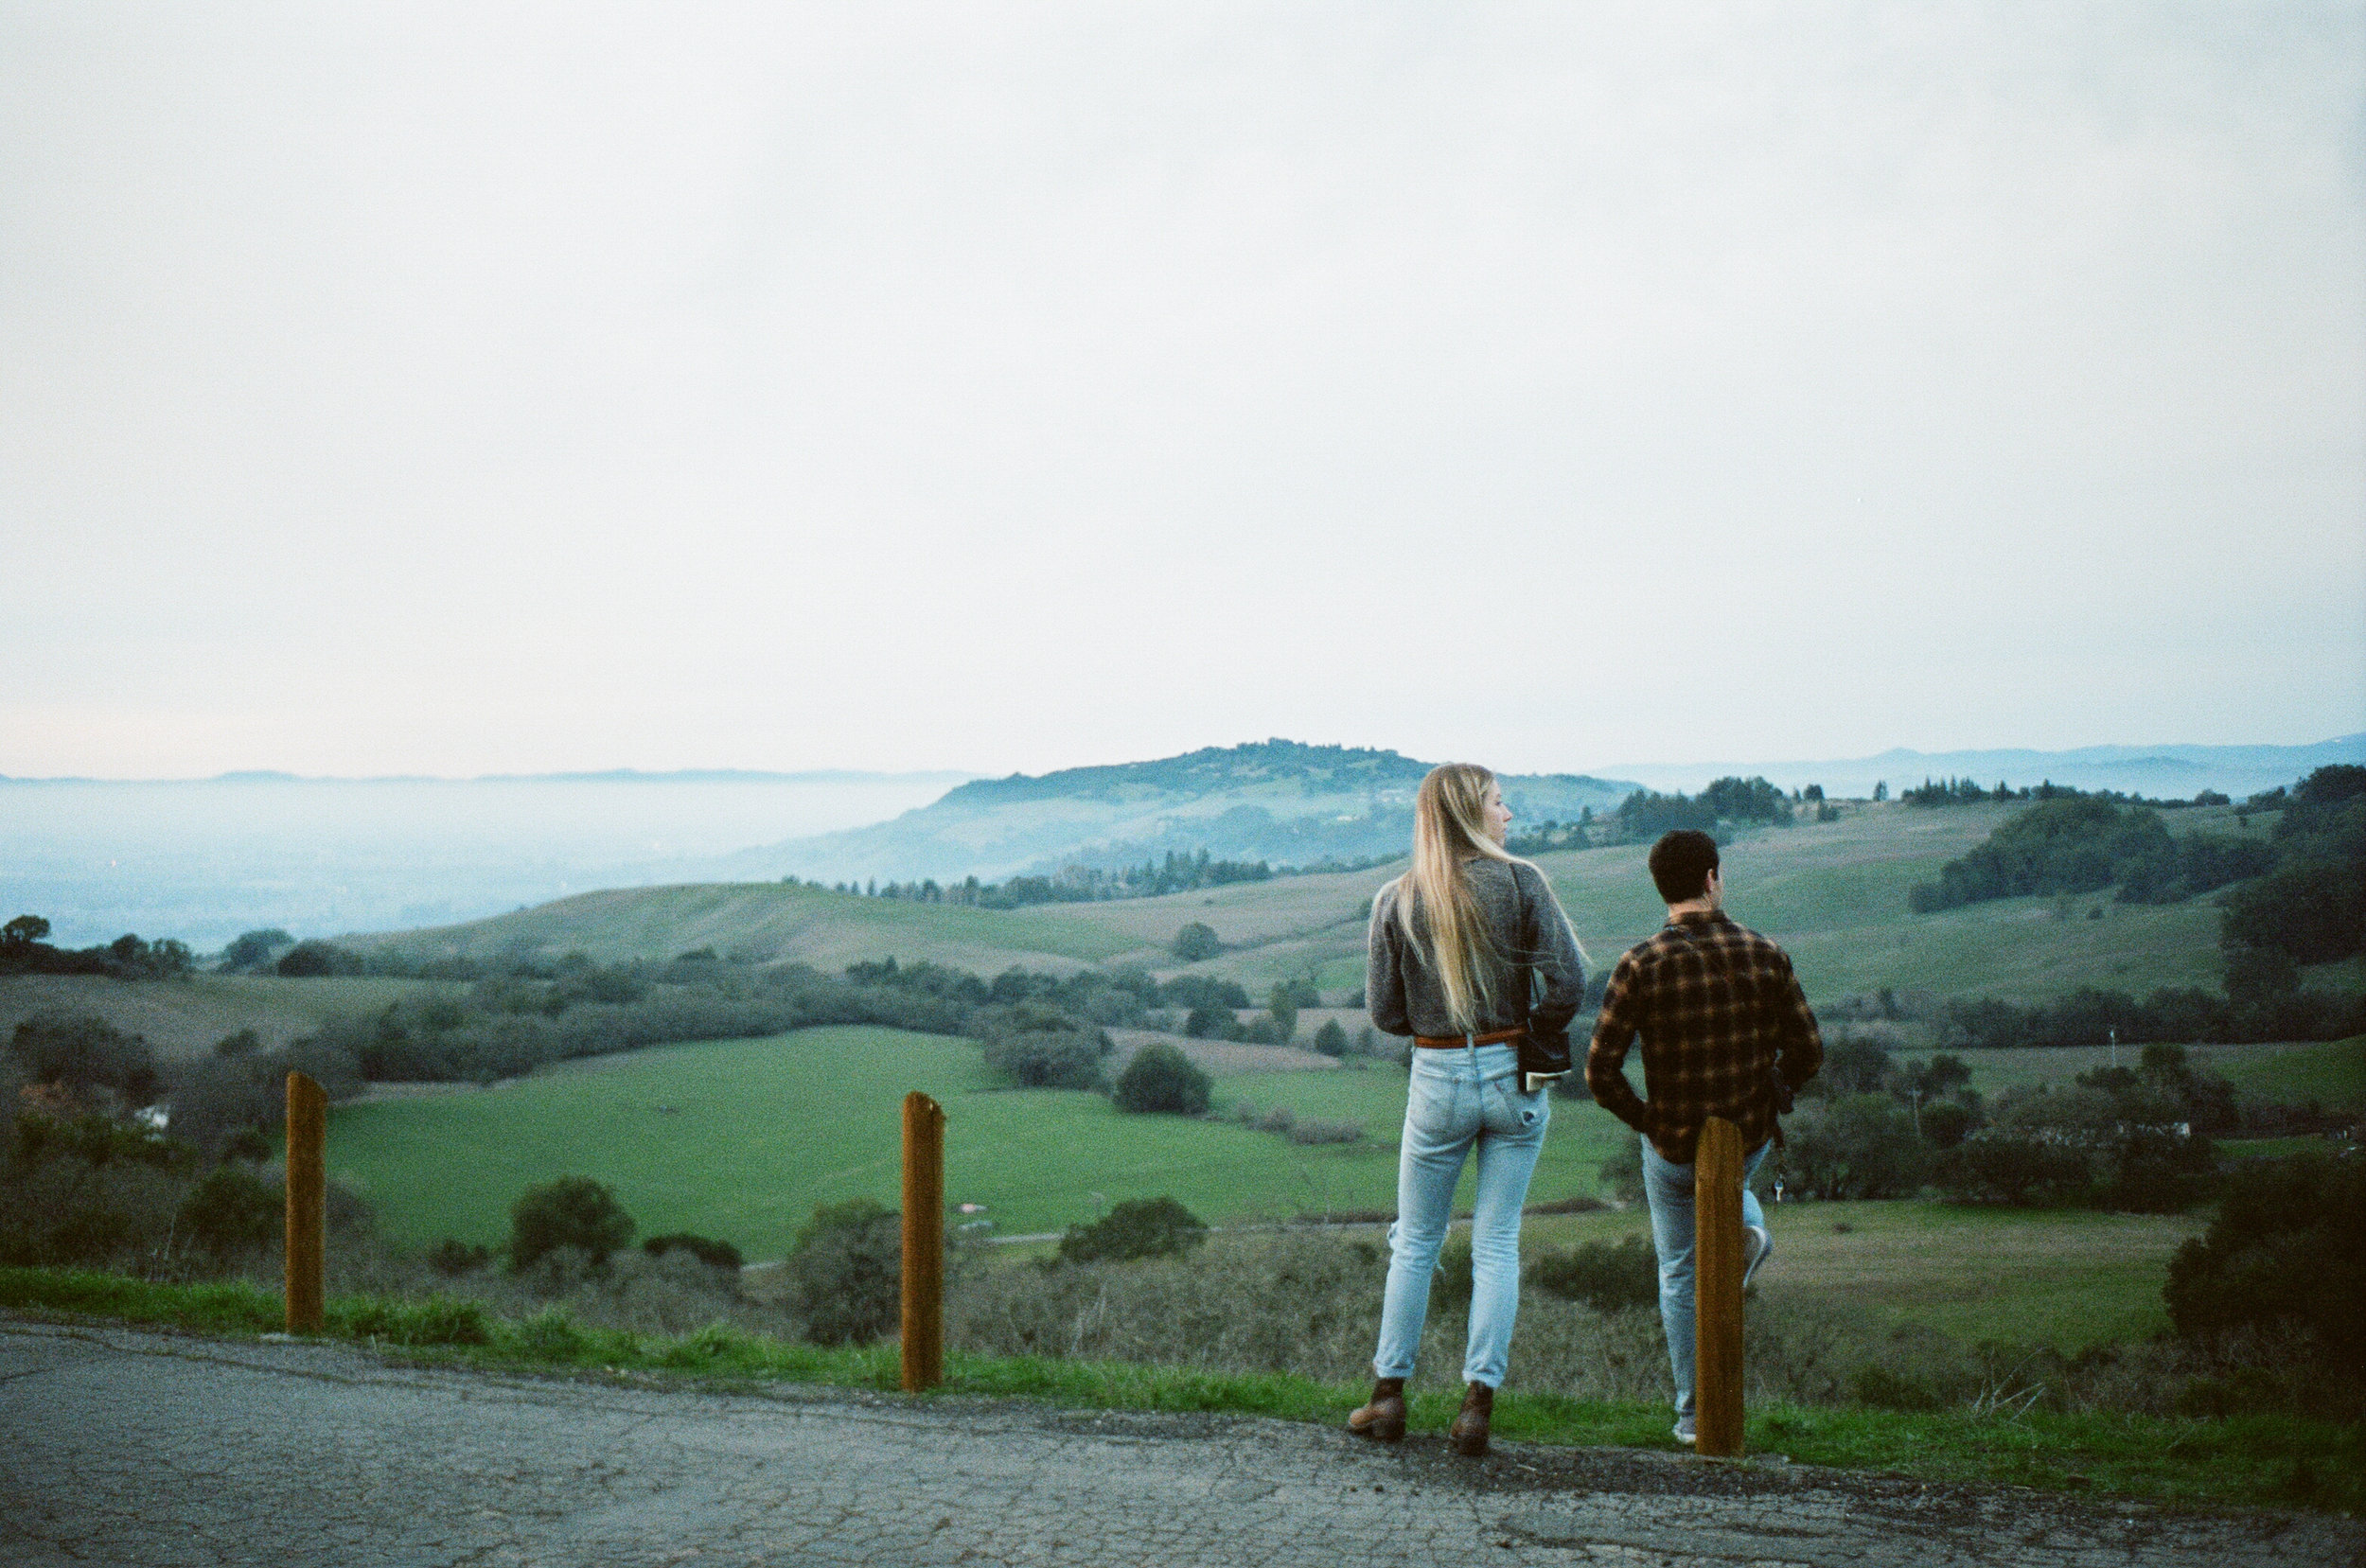 hannah&cole-california-film-jan2019-peytoncurry-000098780021.jpg